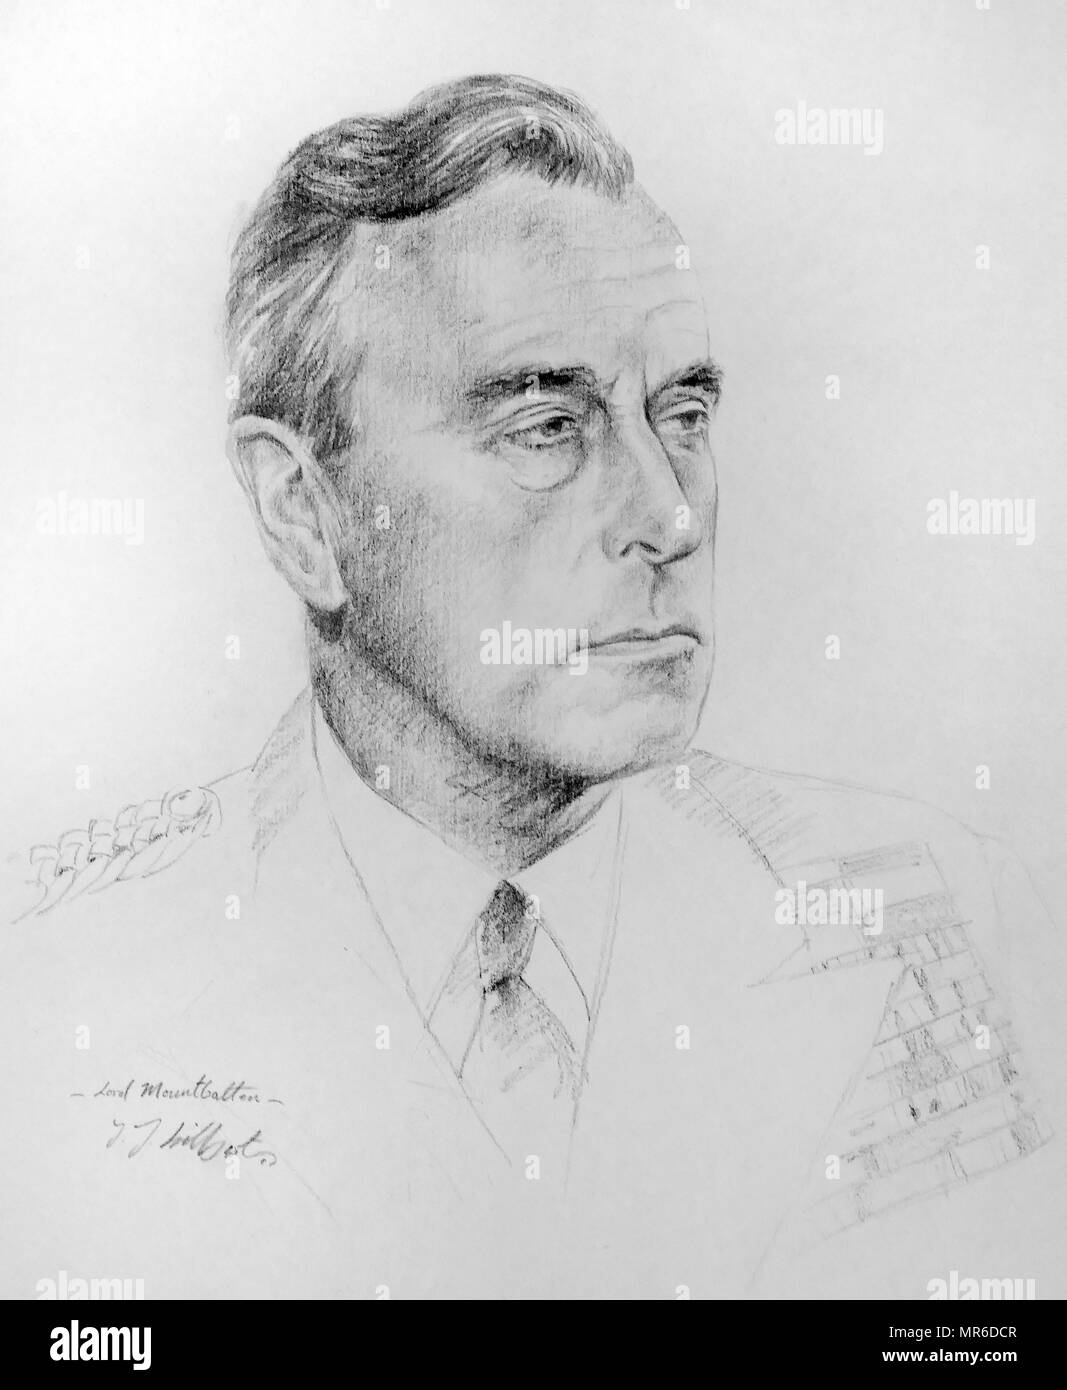 Pencil Portrait of Admiral of the Fleet Louis Mountbatten, 1st Earl Mountbatten of Burma (1900 – 1979). British naval officer. During the Second World War, Supreme Allied Commander, South East Asia Command (1943–46). He was the last Viceroy of India (1947) and the first Governor-General of independent India (1947–48). By J J Hilbert. - Stock Image